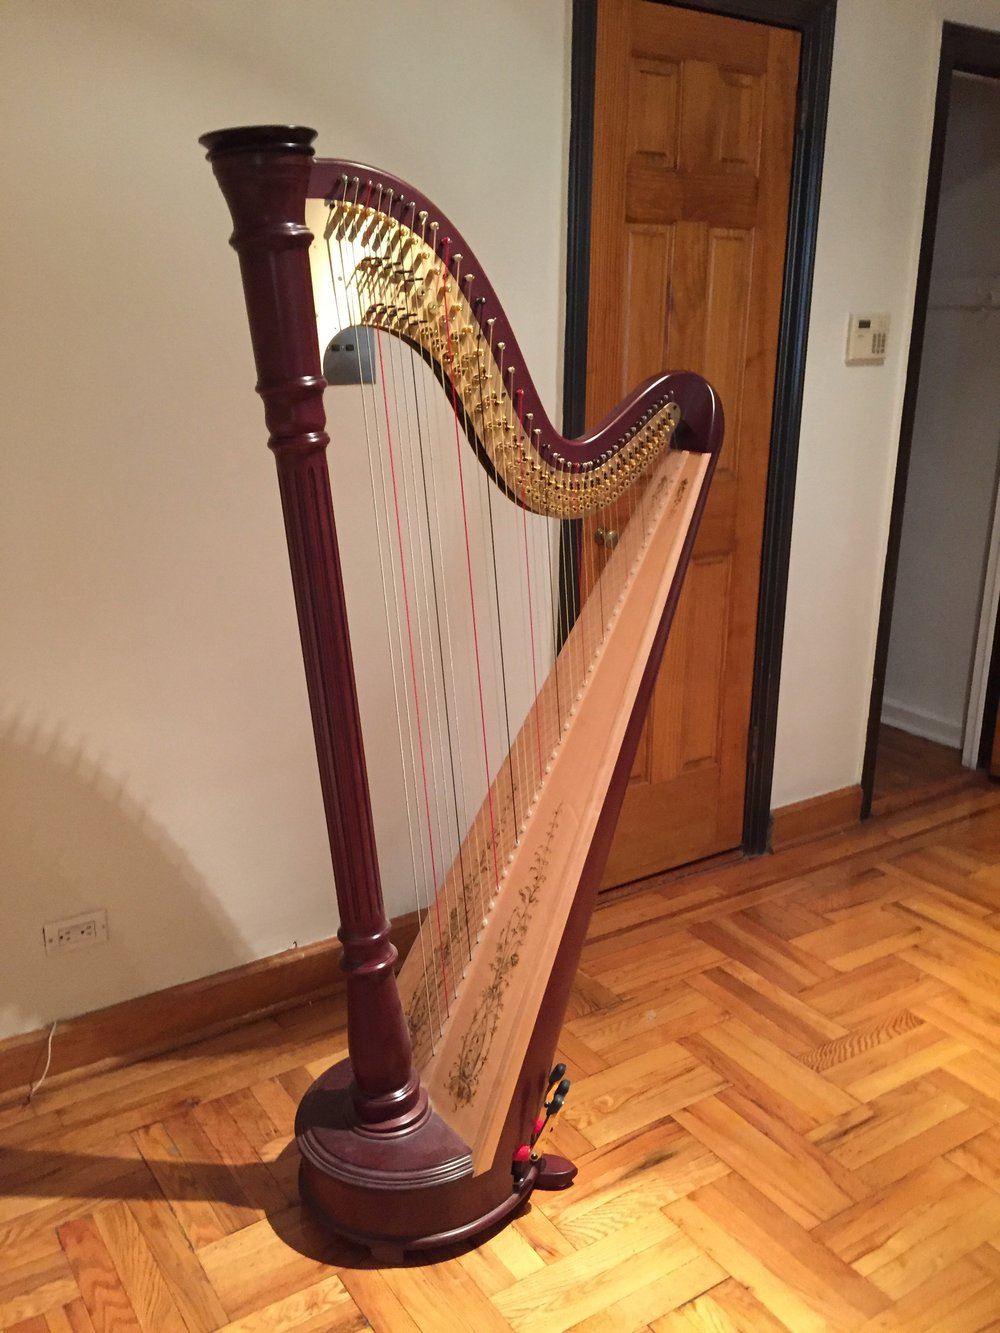 My beautiful harp